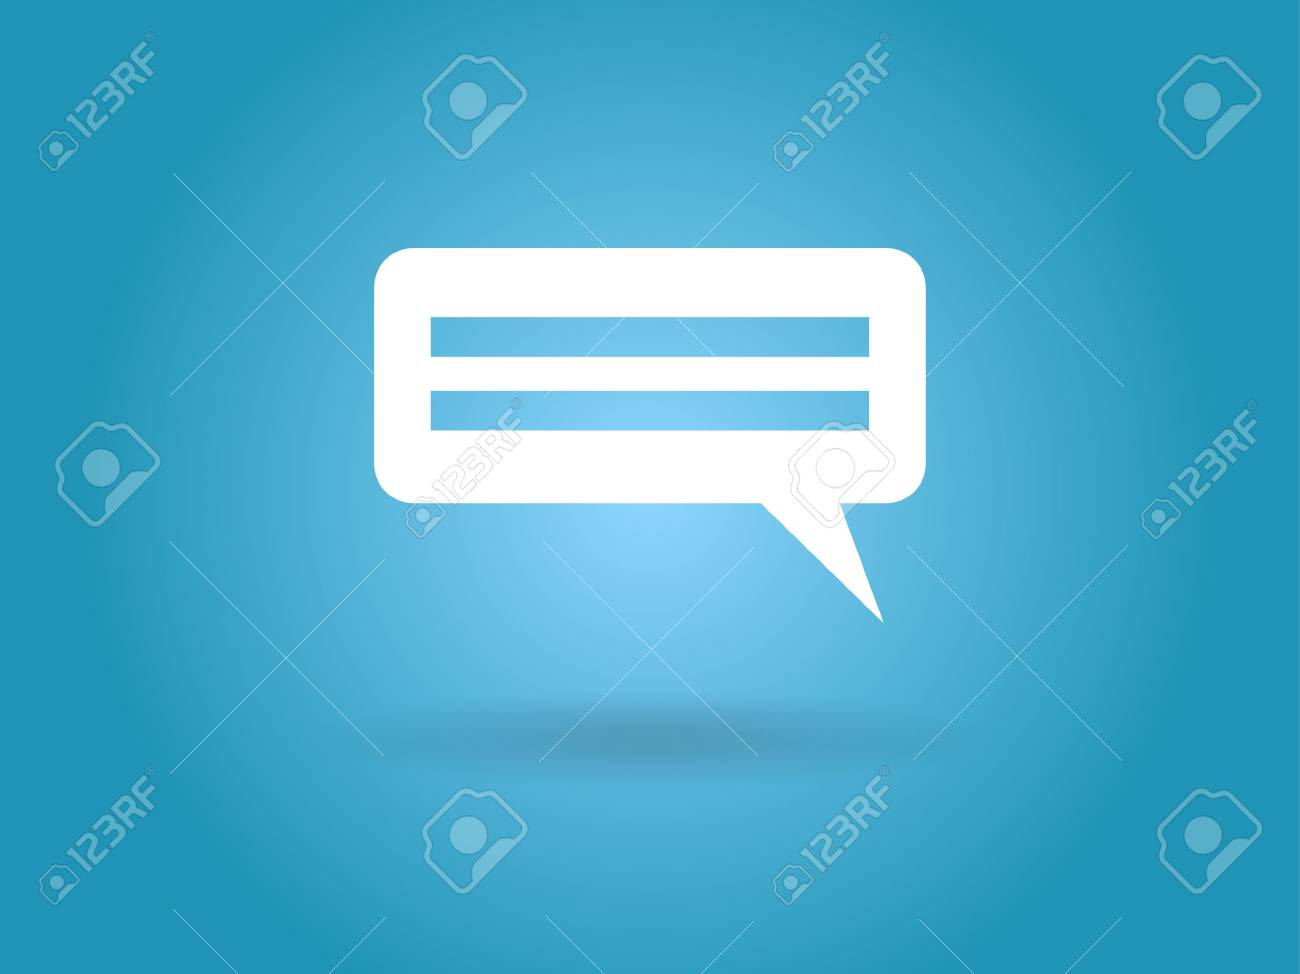 Flat  icon of a communication Stock Vector - 29186822